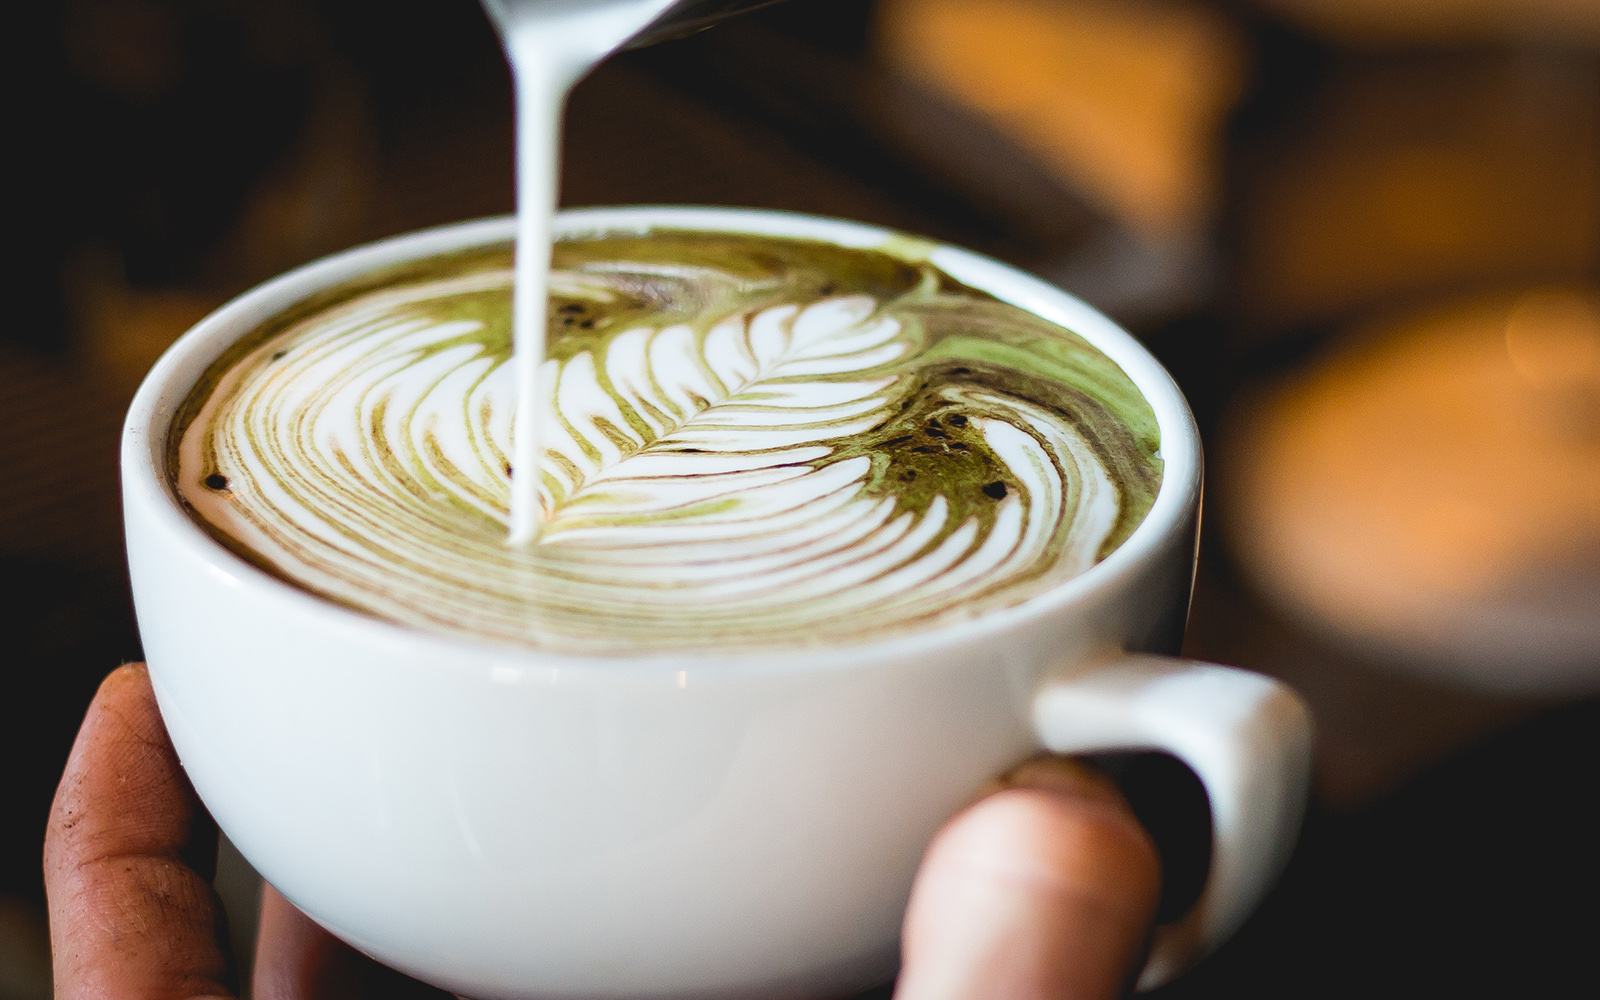 A hand can be seen pouring milk into a large cup to create a leaf like pattern on a latte